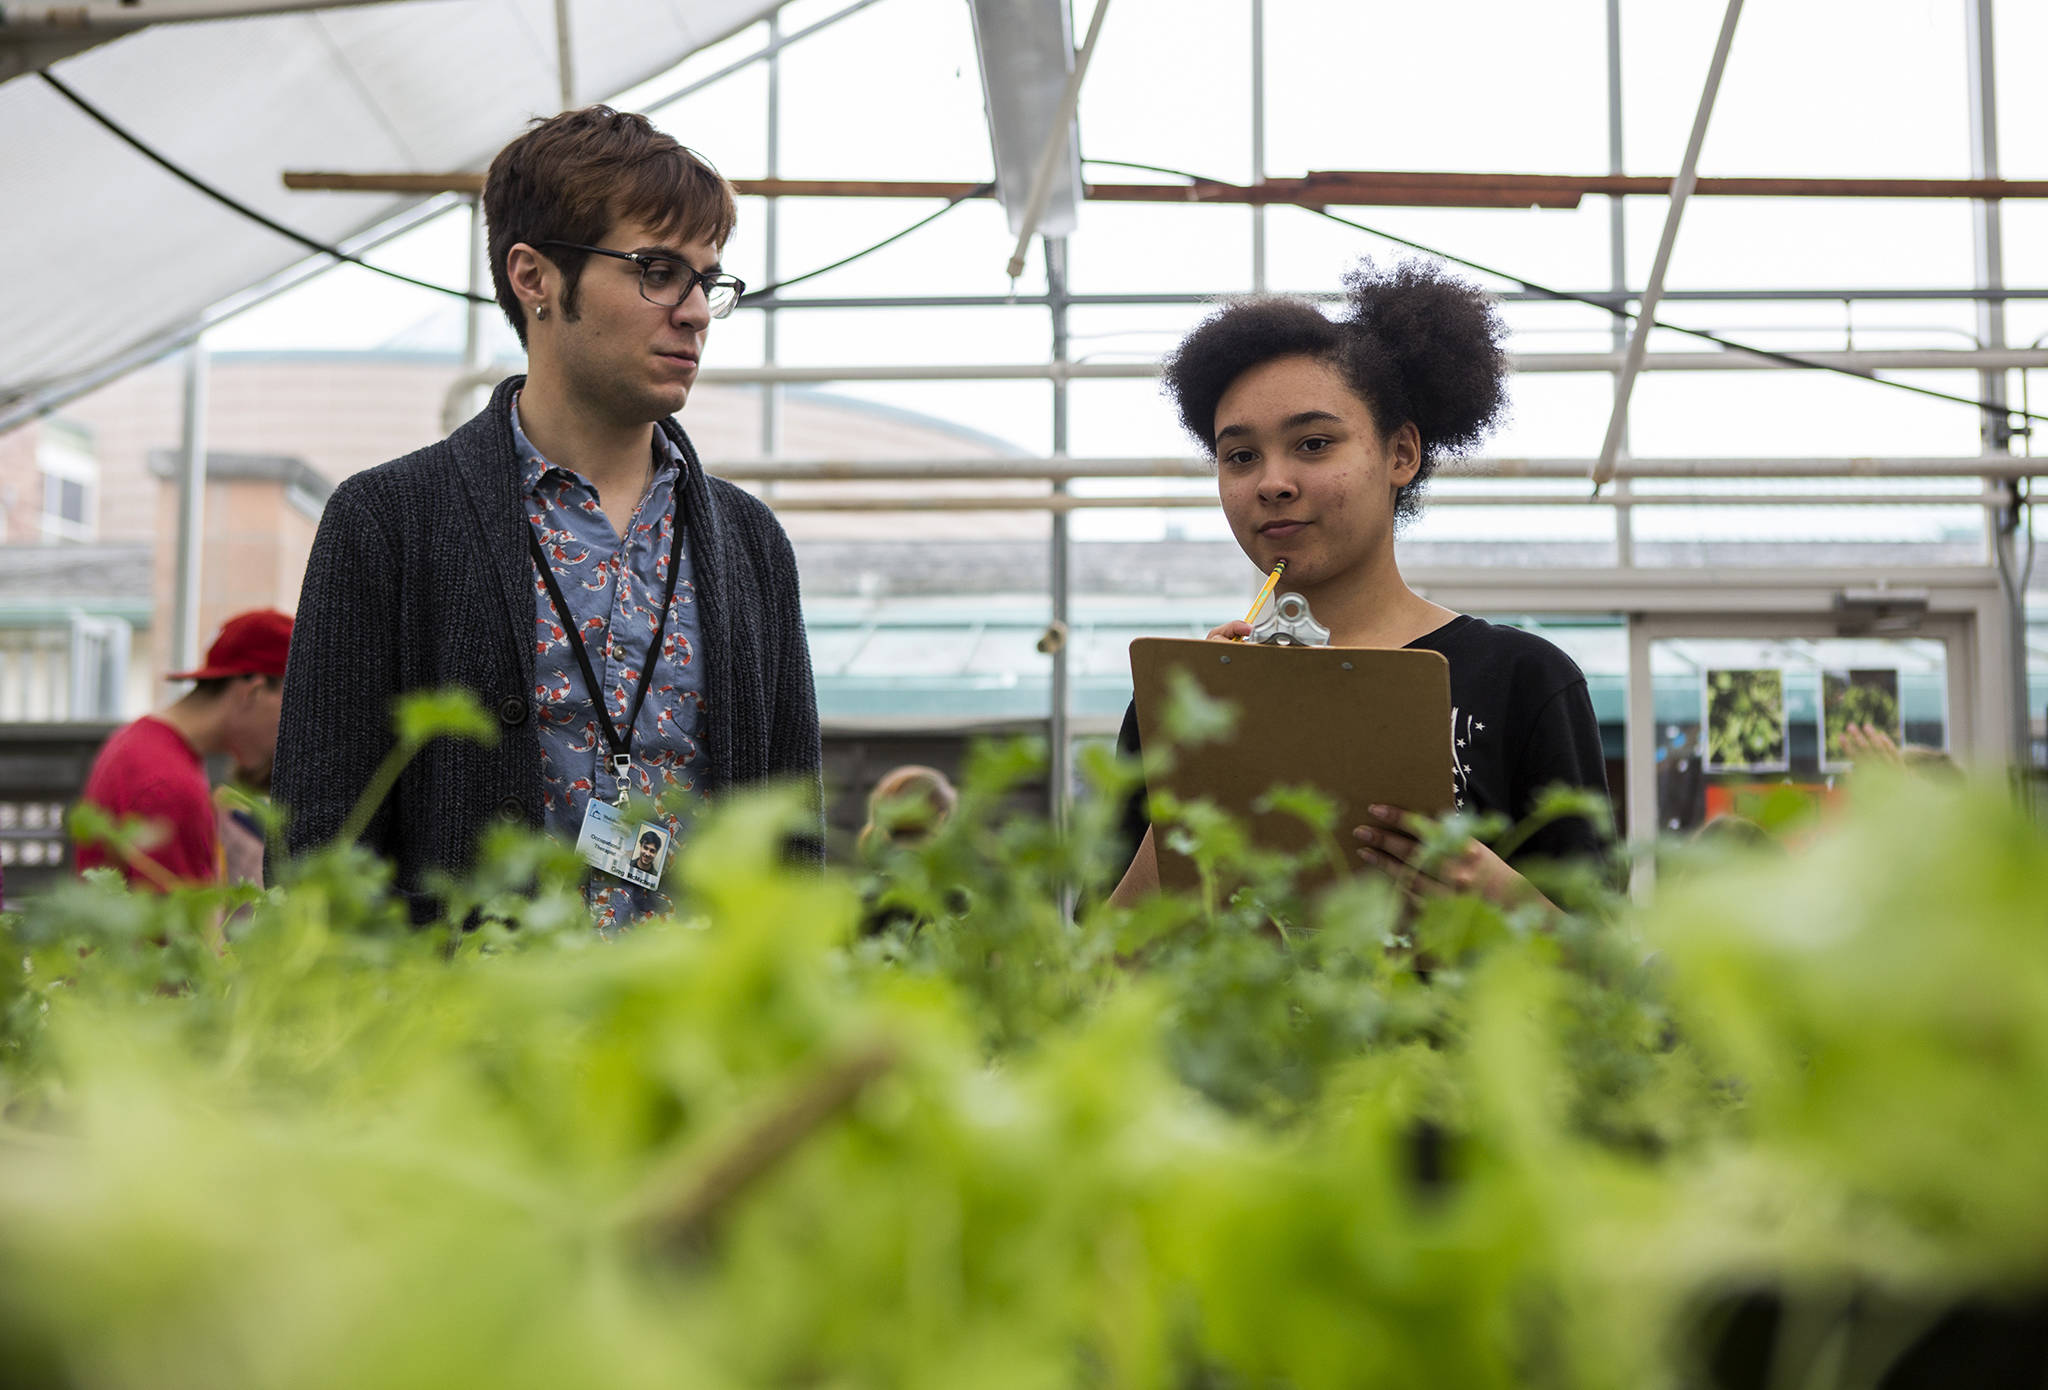 Greg McMichael (left) helps Emily Harris (right) with a plant order during the Functional Life Academics plant sale at Kamiak High School on May 14 in Mukilteo. (Olivia Vanni / The Herald)